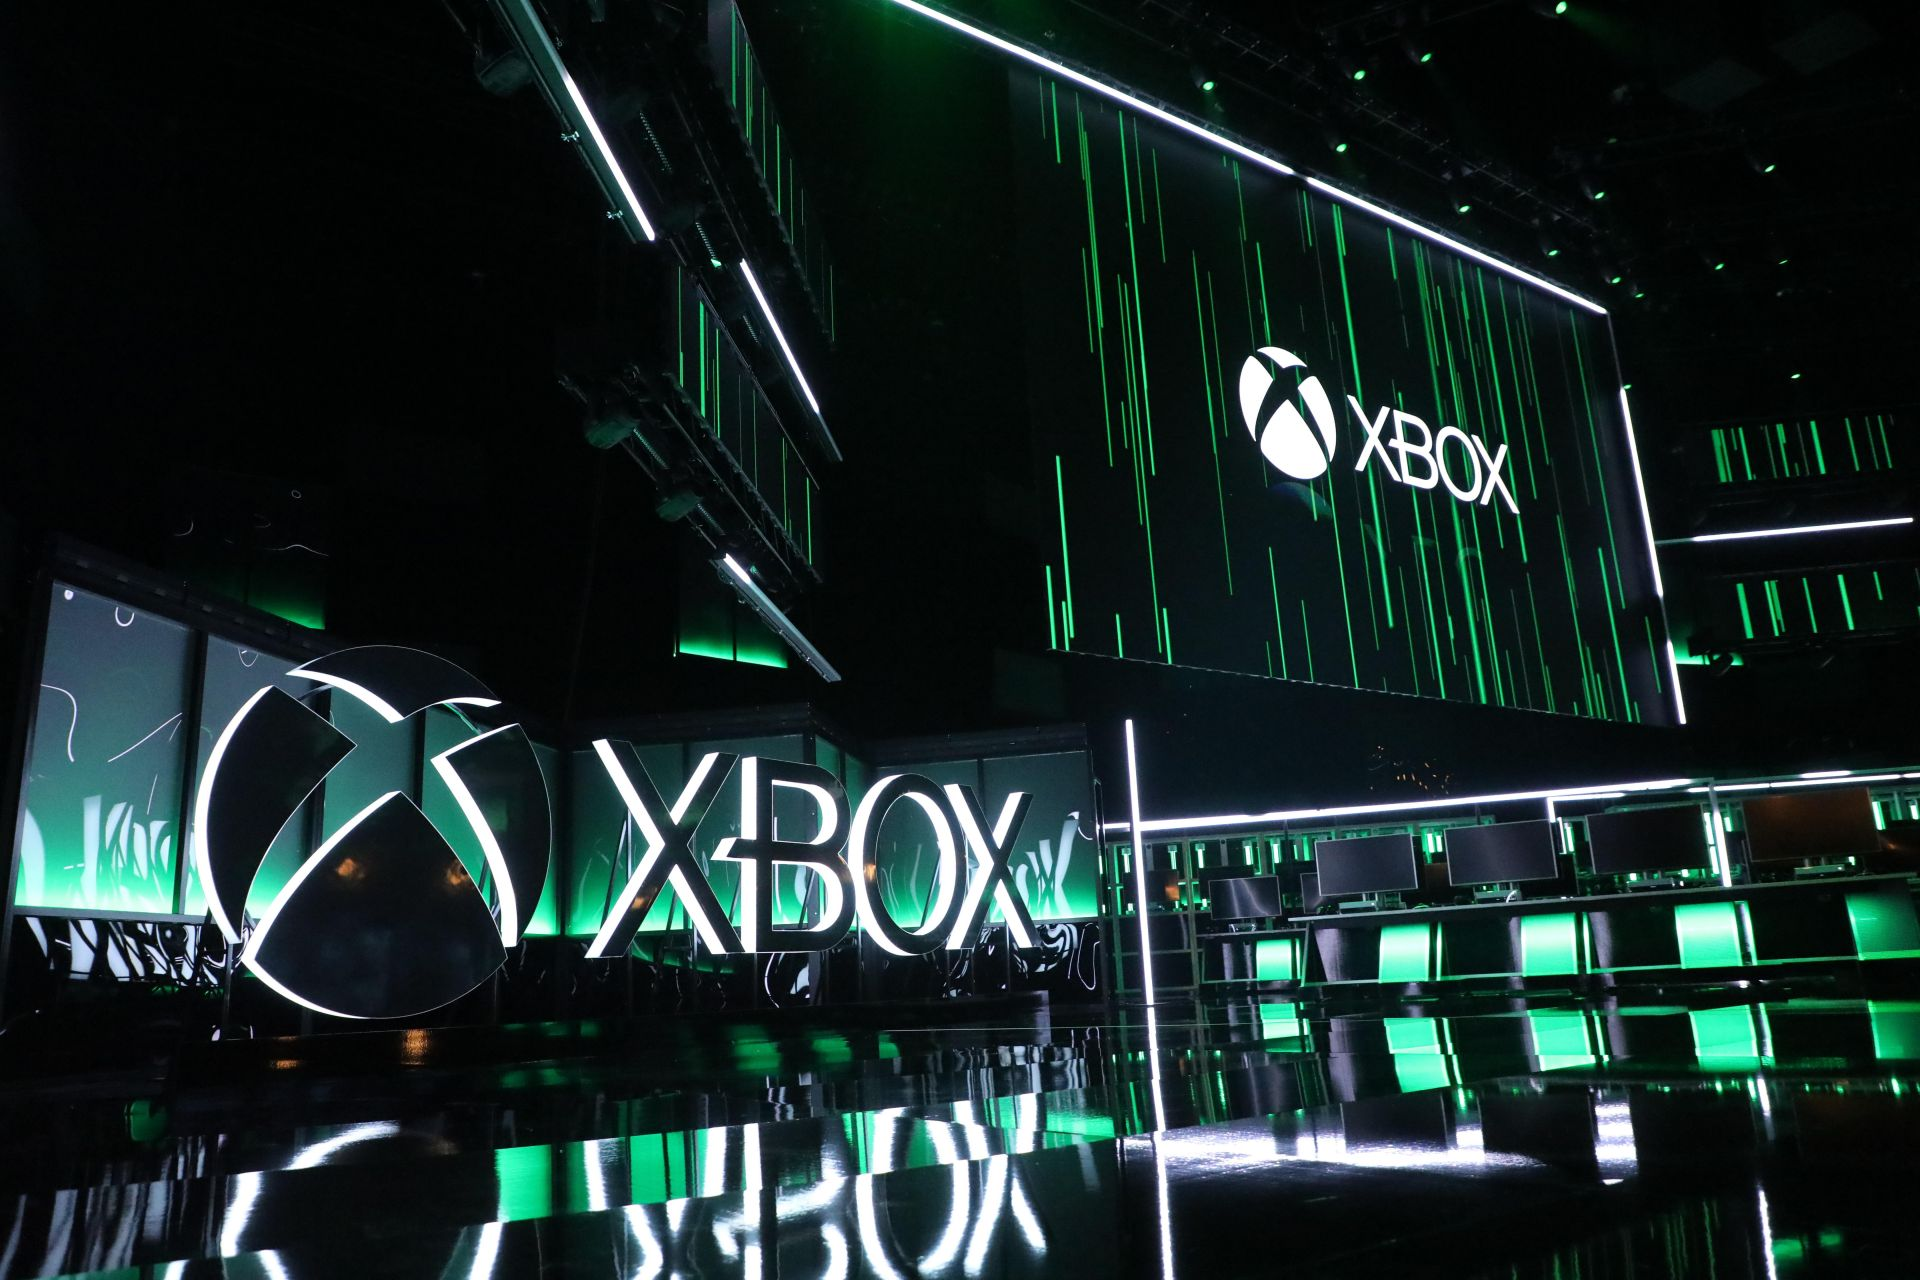 The stage is lit for the Xbox press conference at the Microsoft Theater prior to the E3 expo